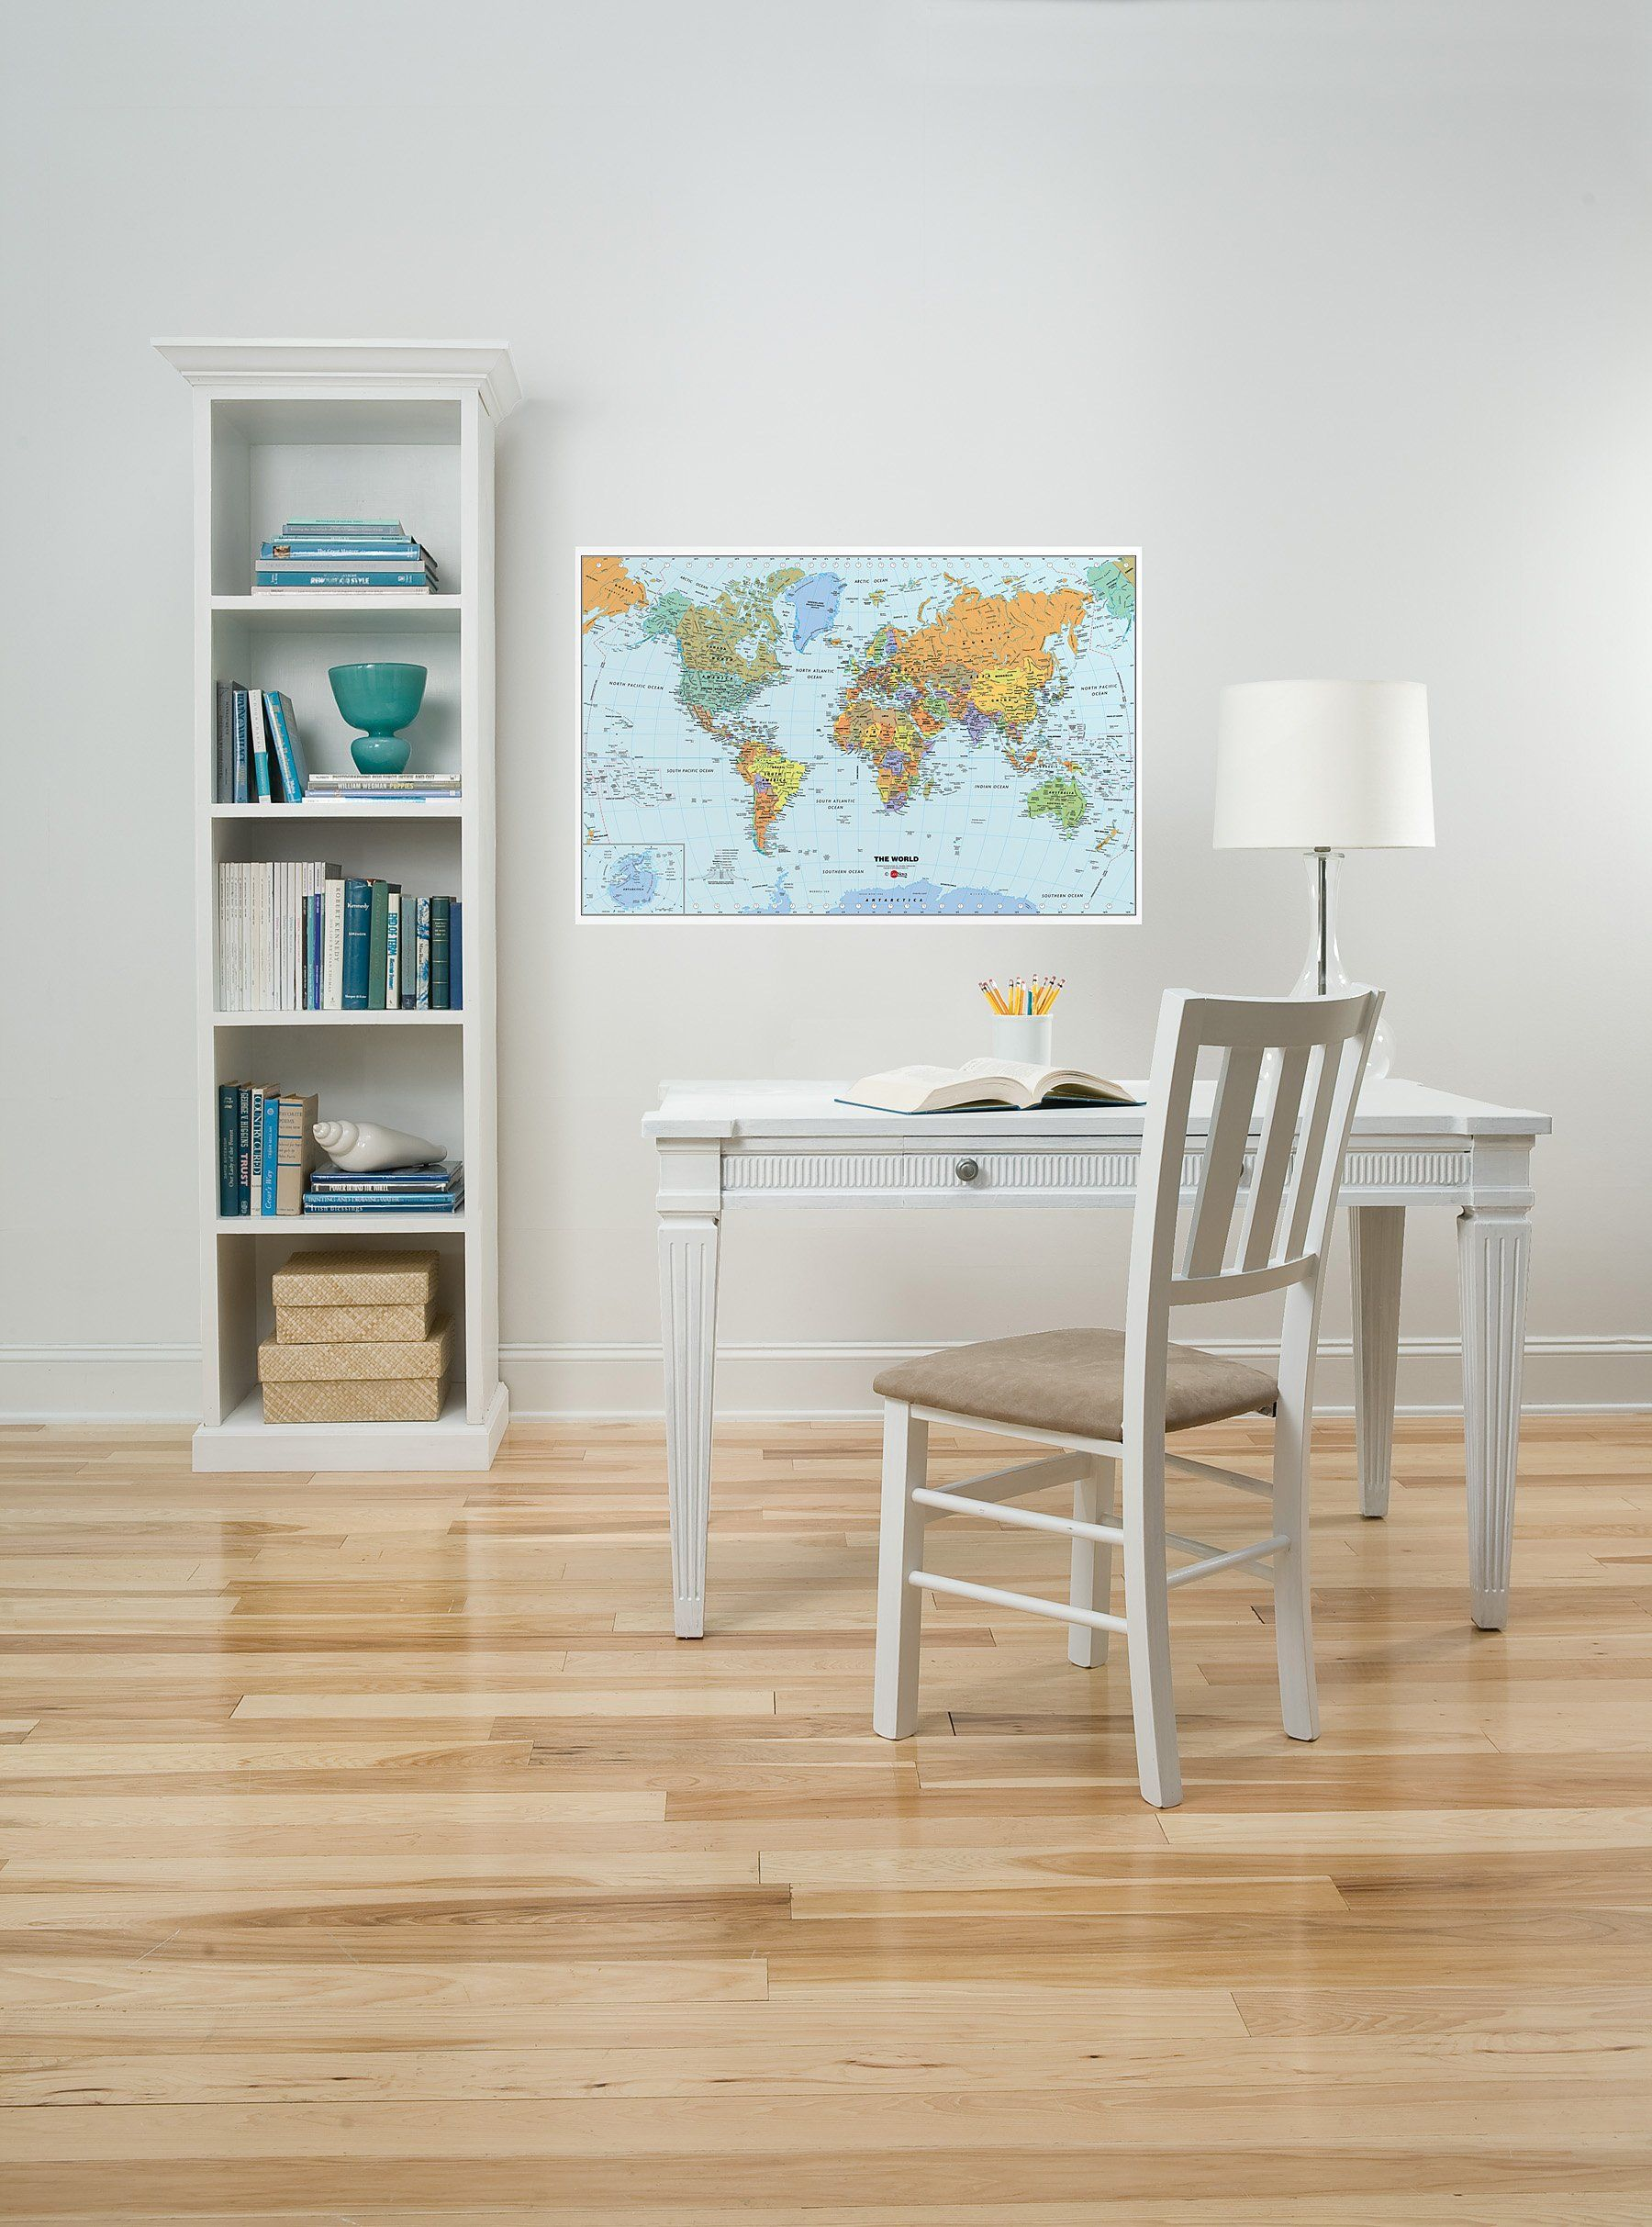 Brewster Wall Pops Wpe99074 Peel Stick World Dry Erase Map With